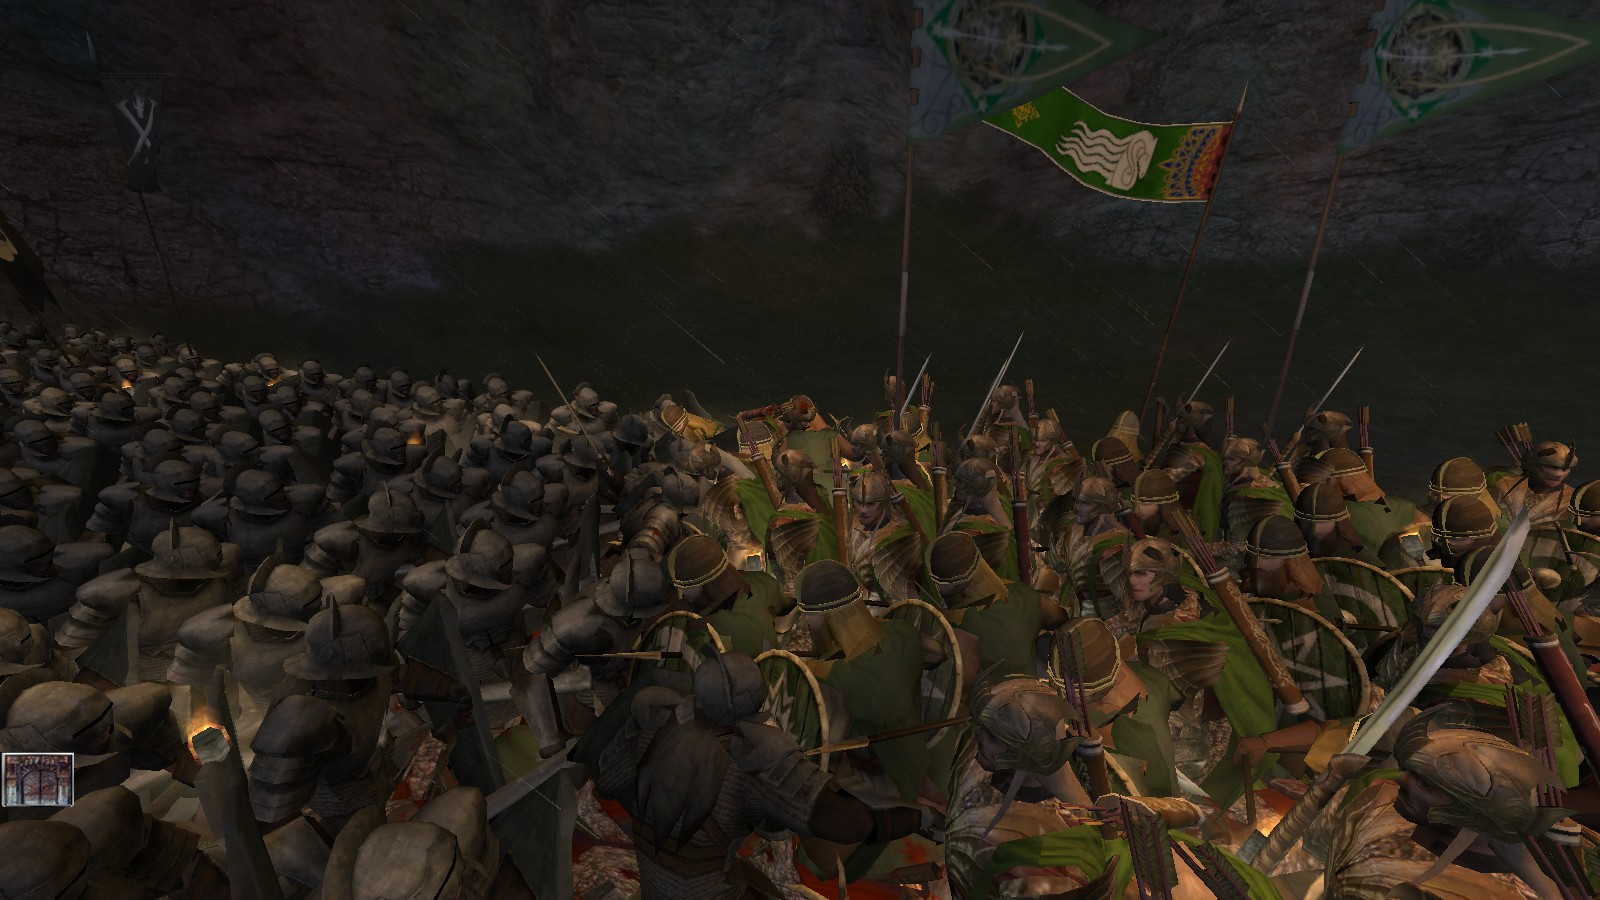 Wallpaper Hd Lord Of The Rings Helms Deep Image Battles Of Middle Earth Pack For Third